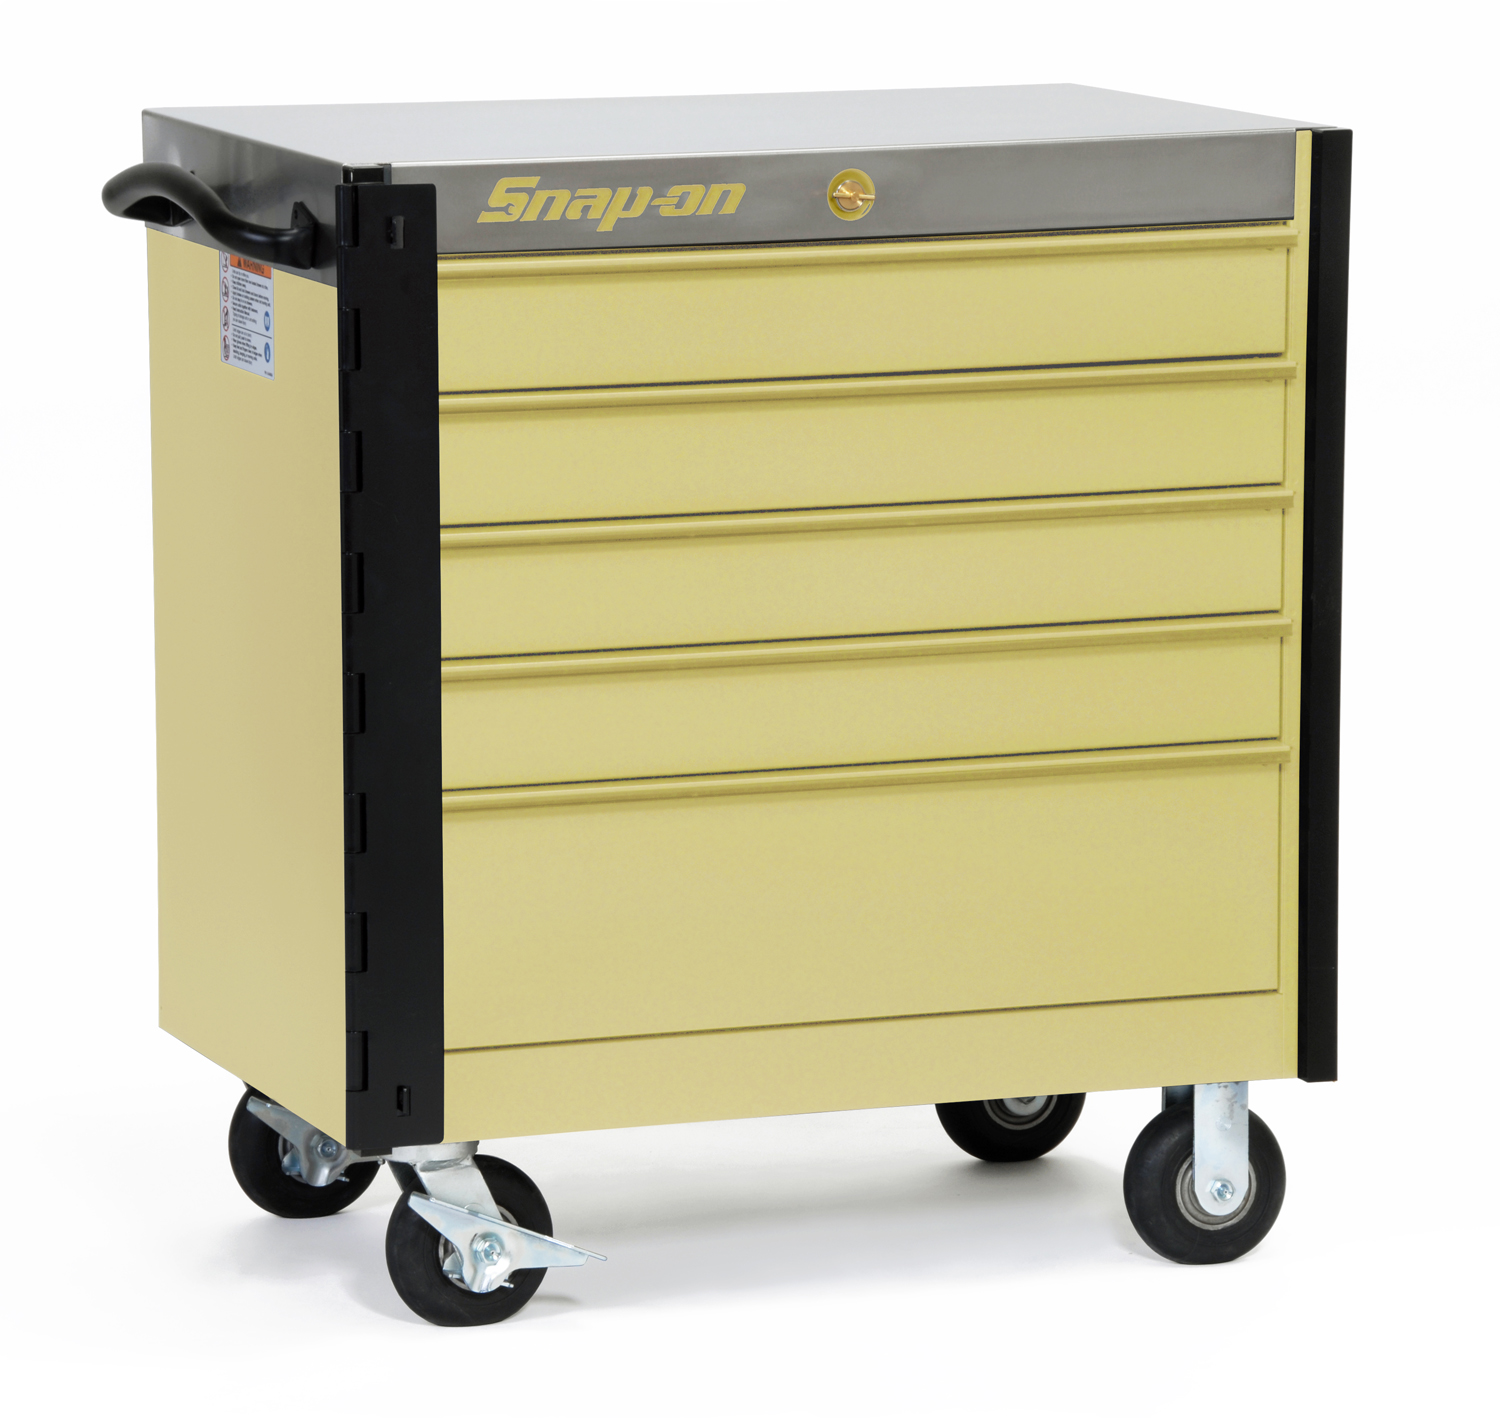 Snap-on Rolls Out Tough New Toolboxes   Business Aviation News ...